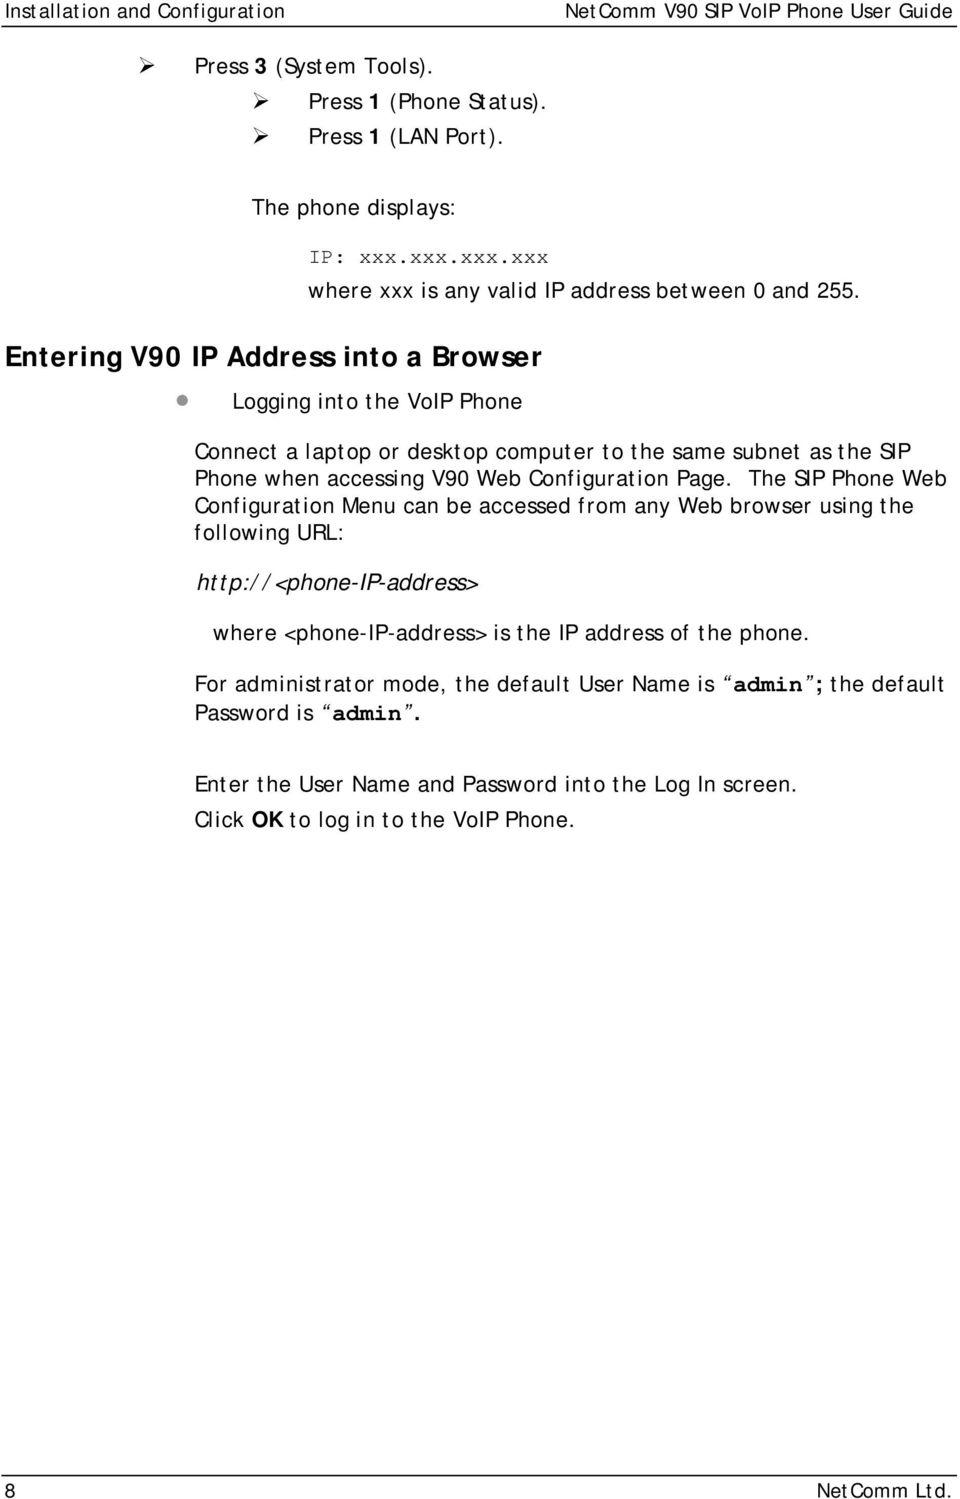 Entering V90 IP Address into a Browser Logging into the VoIP Phone Connect a laptop or desktop computer to the same subnet as the SIP Phone when accessing V90 Web Configuration Page.